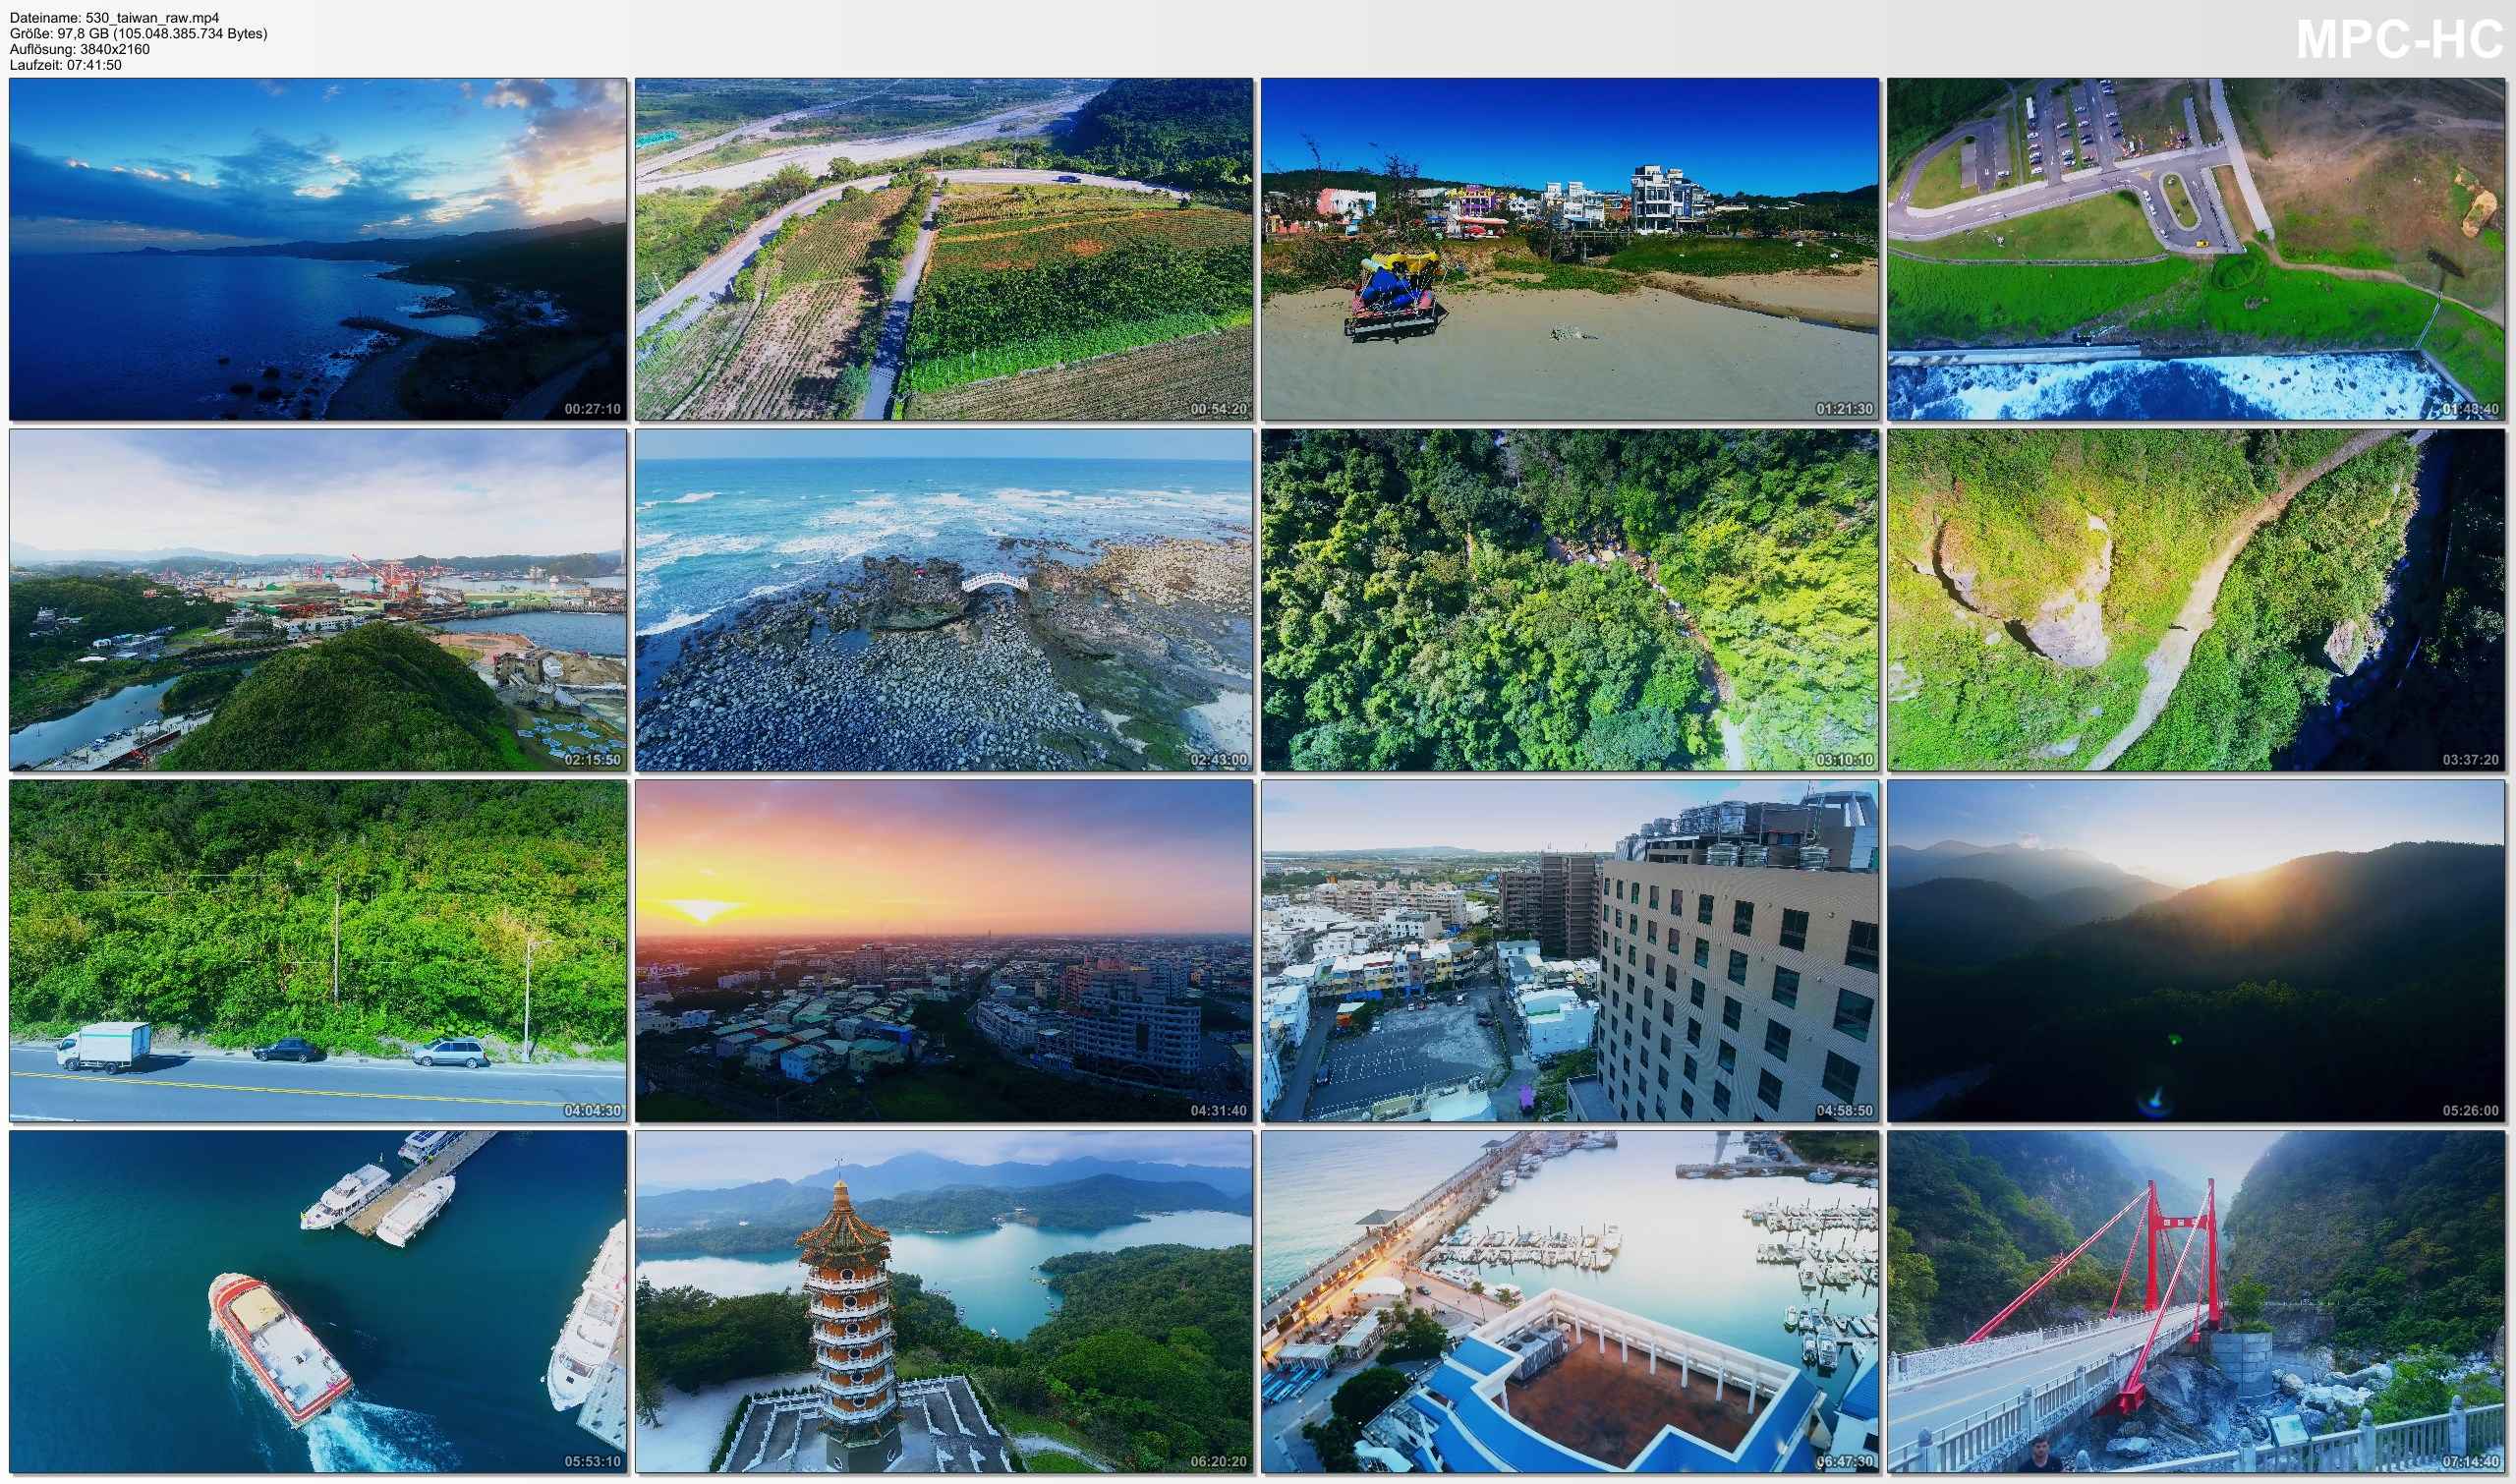 Drone Pictures from Video 【4K】Drone RAW Footage | This is TAIWAN 2020 | Taroko Gorge | Sun Moon Lake and More | UltraHD Stock